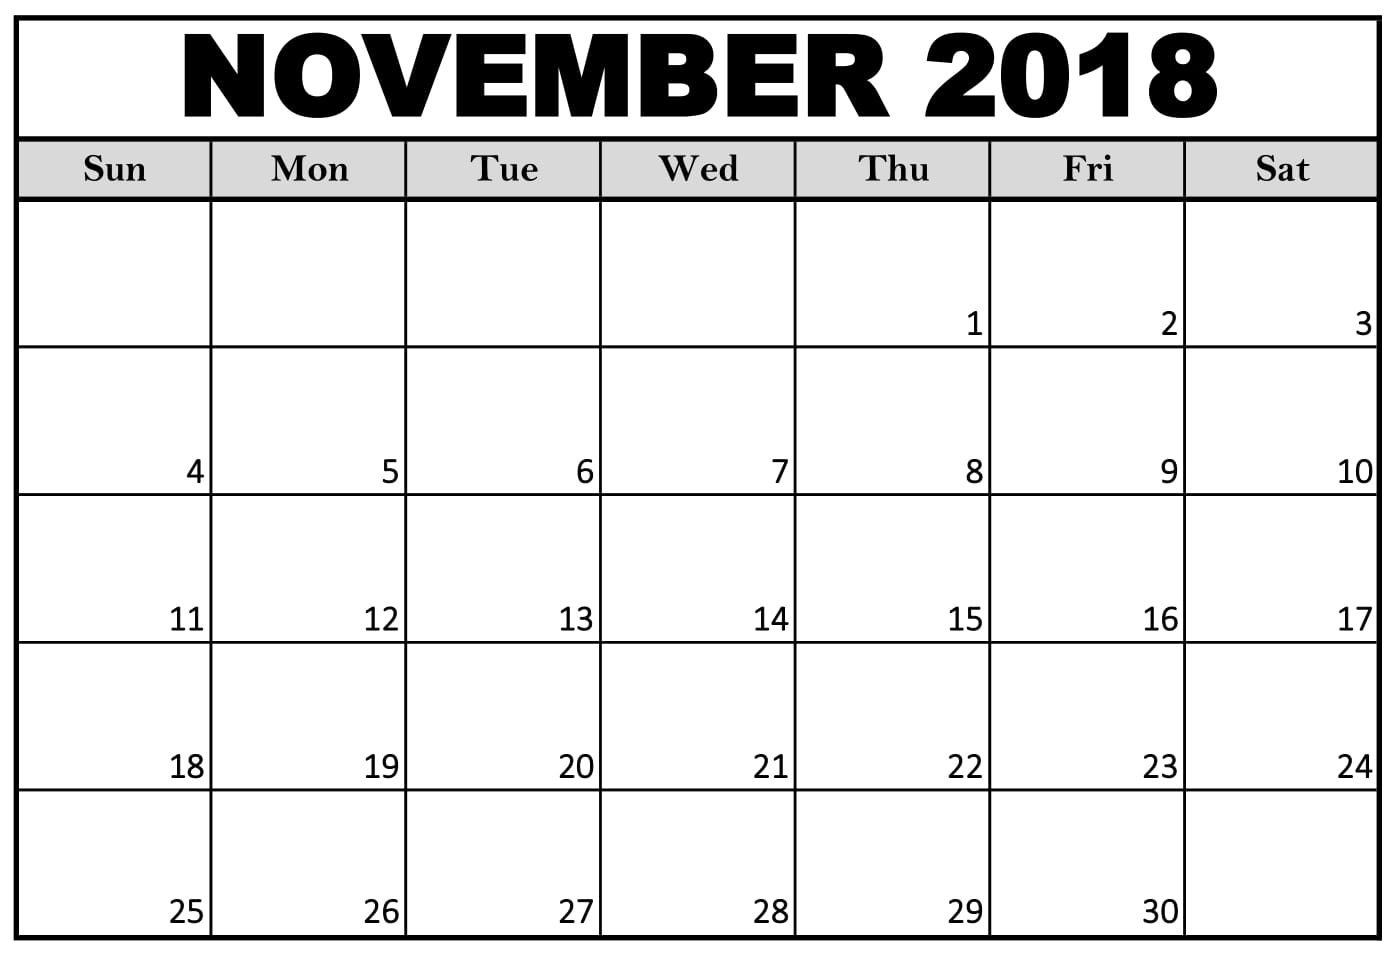 monthly november 2018 calendar template in microsoft word calendar November 2018 Calendar MS Word erdferdf